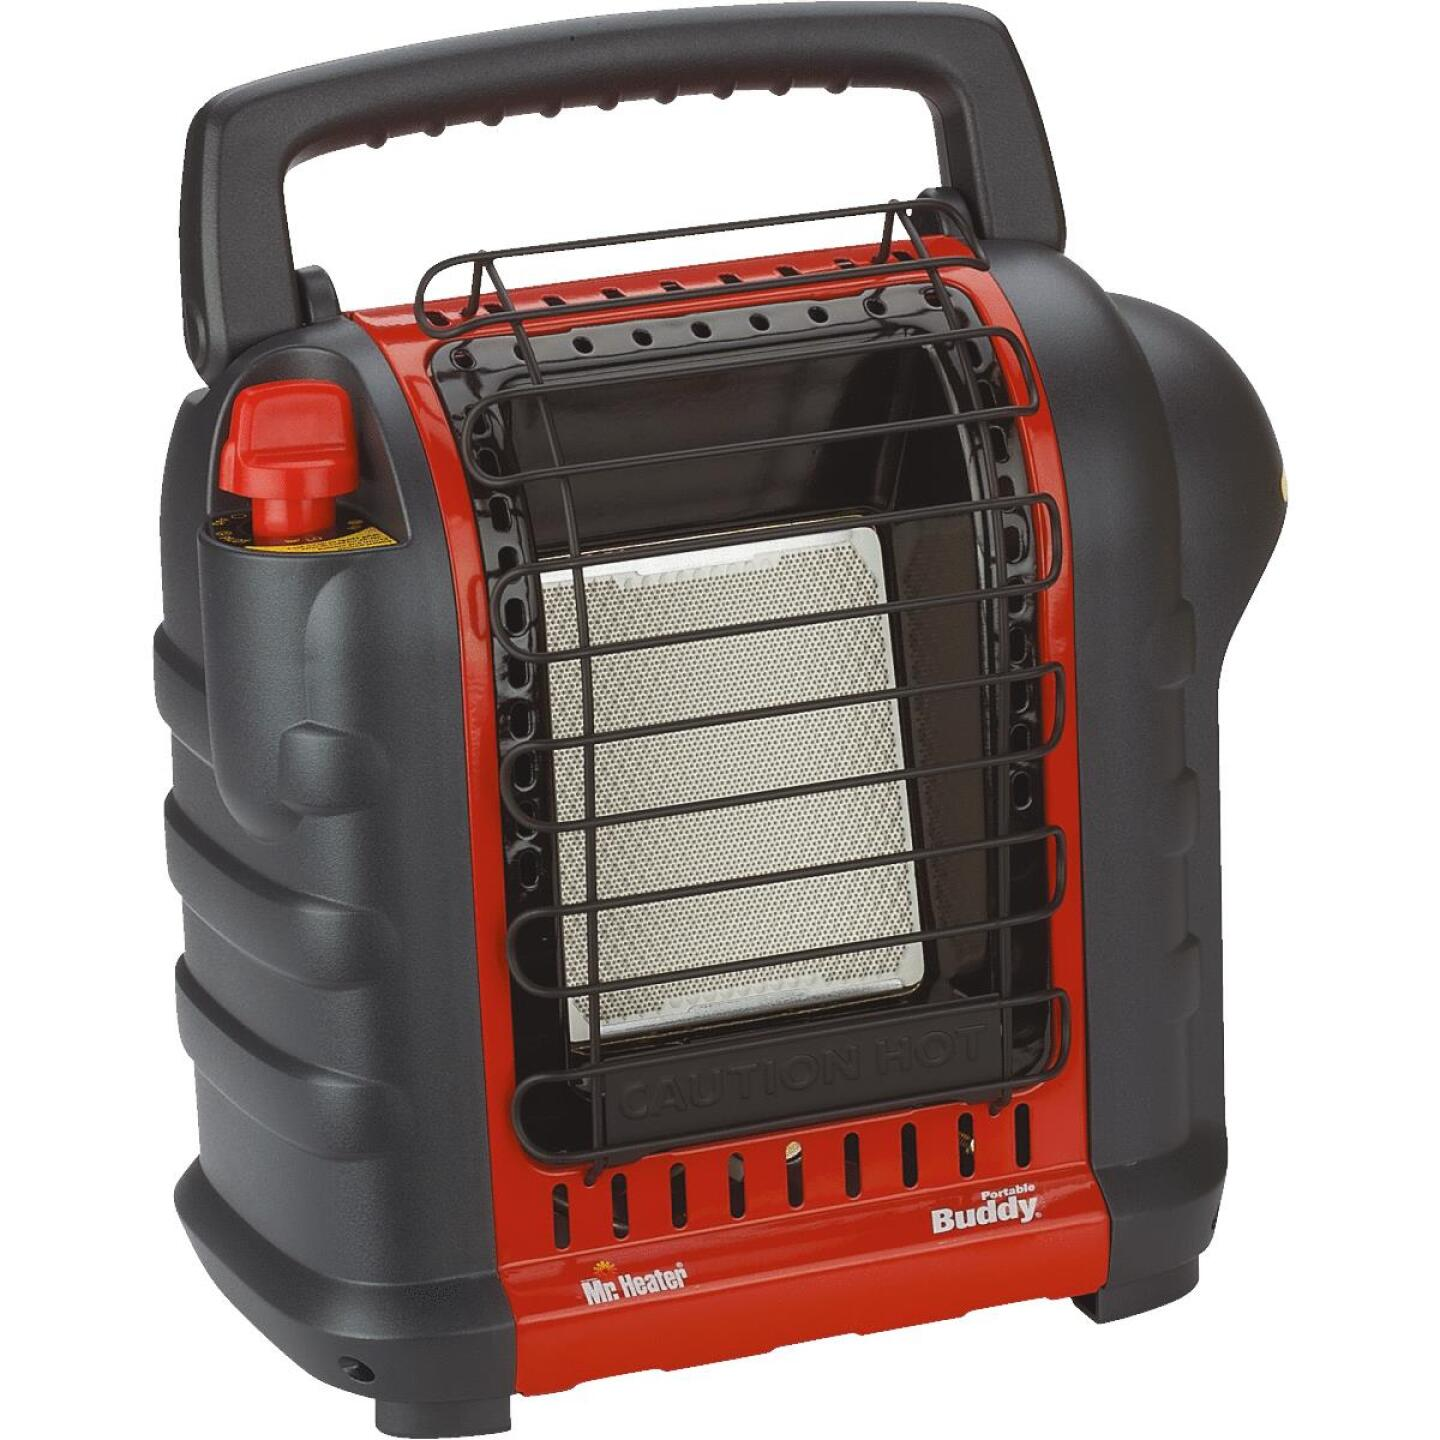 MR. HEATER 9000 BTU Radiant Portable Buddy Propane Heater Image 1